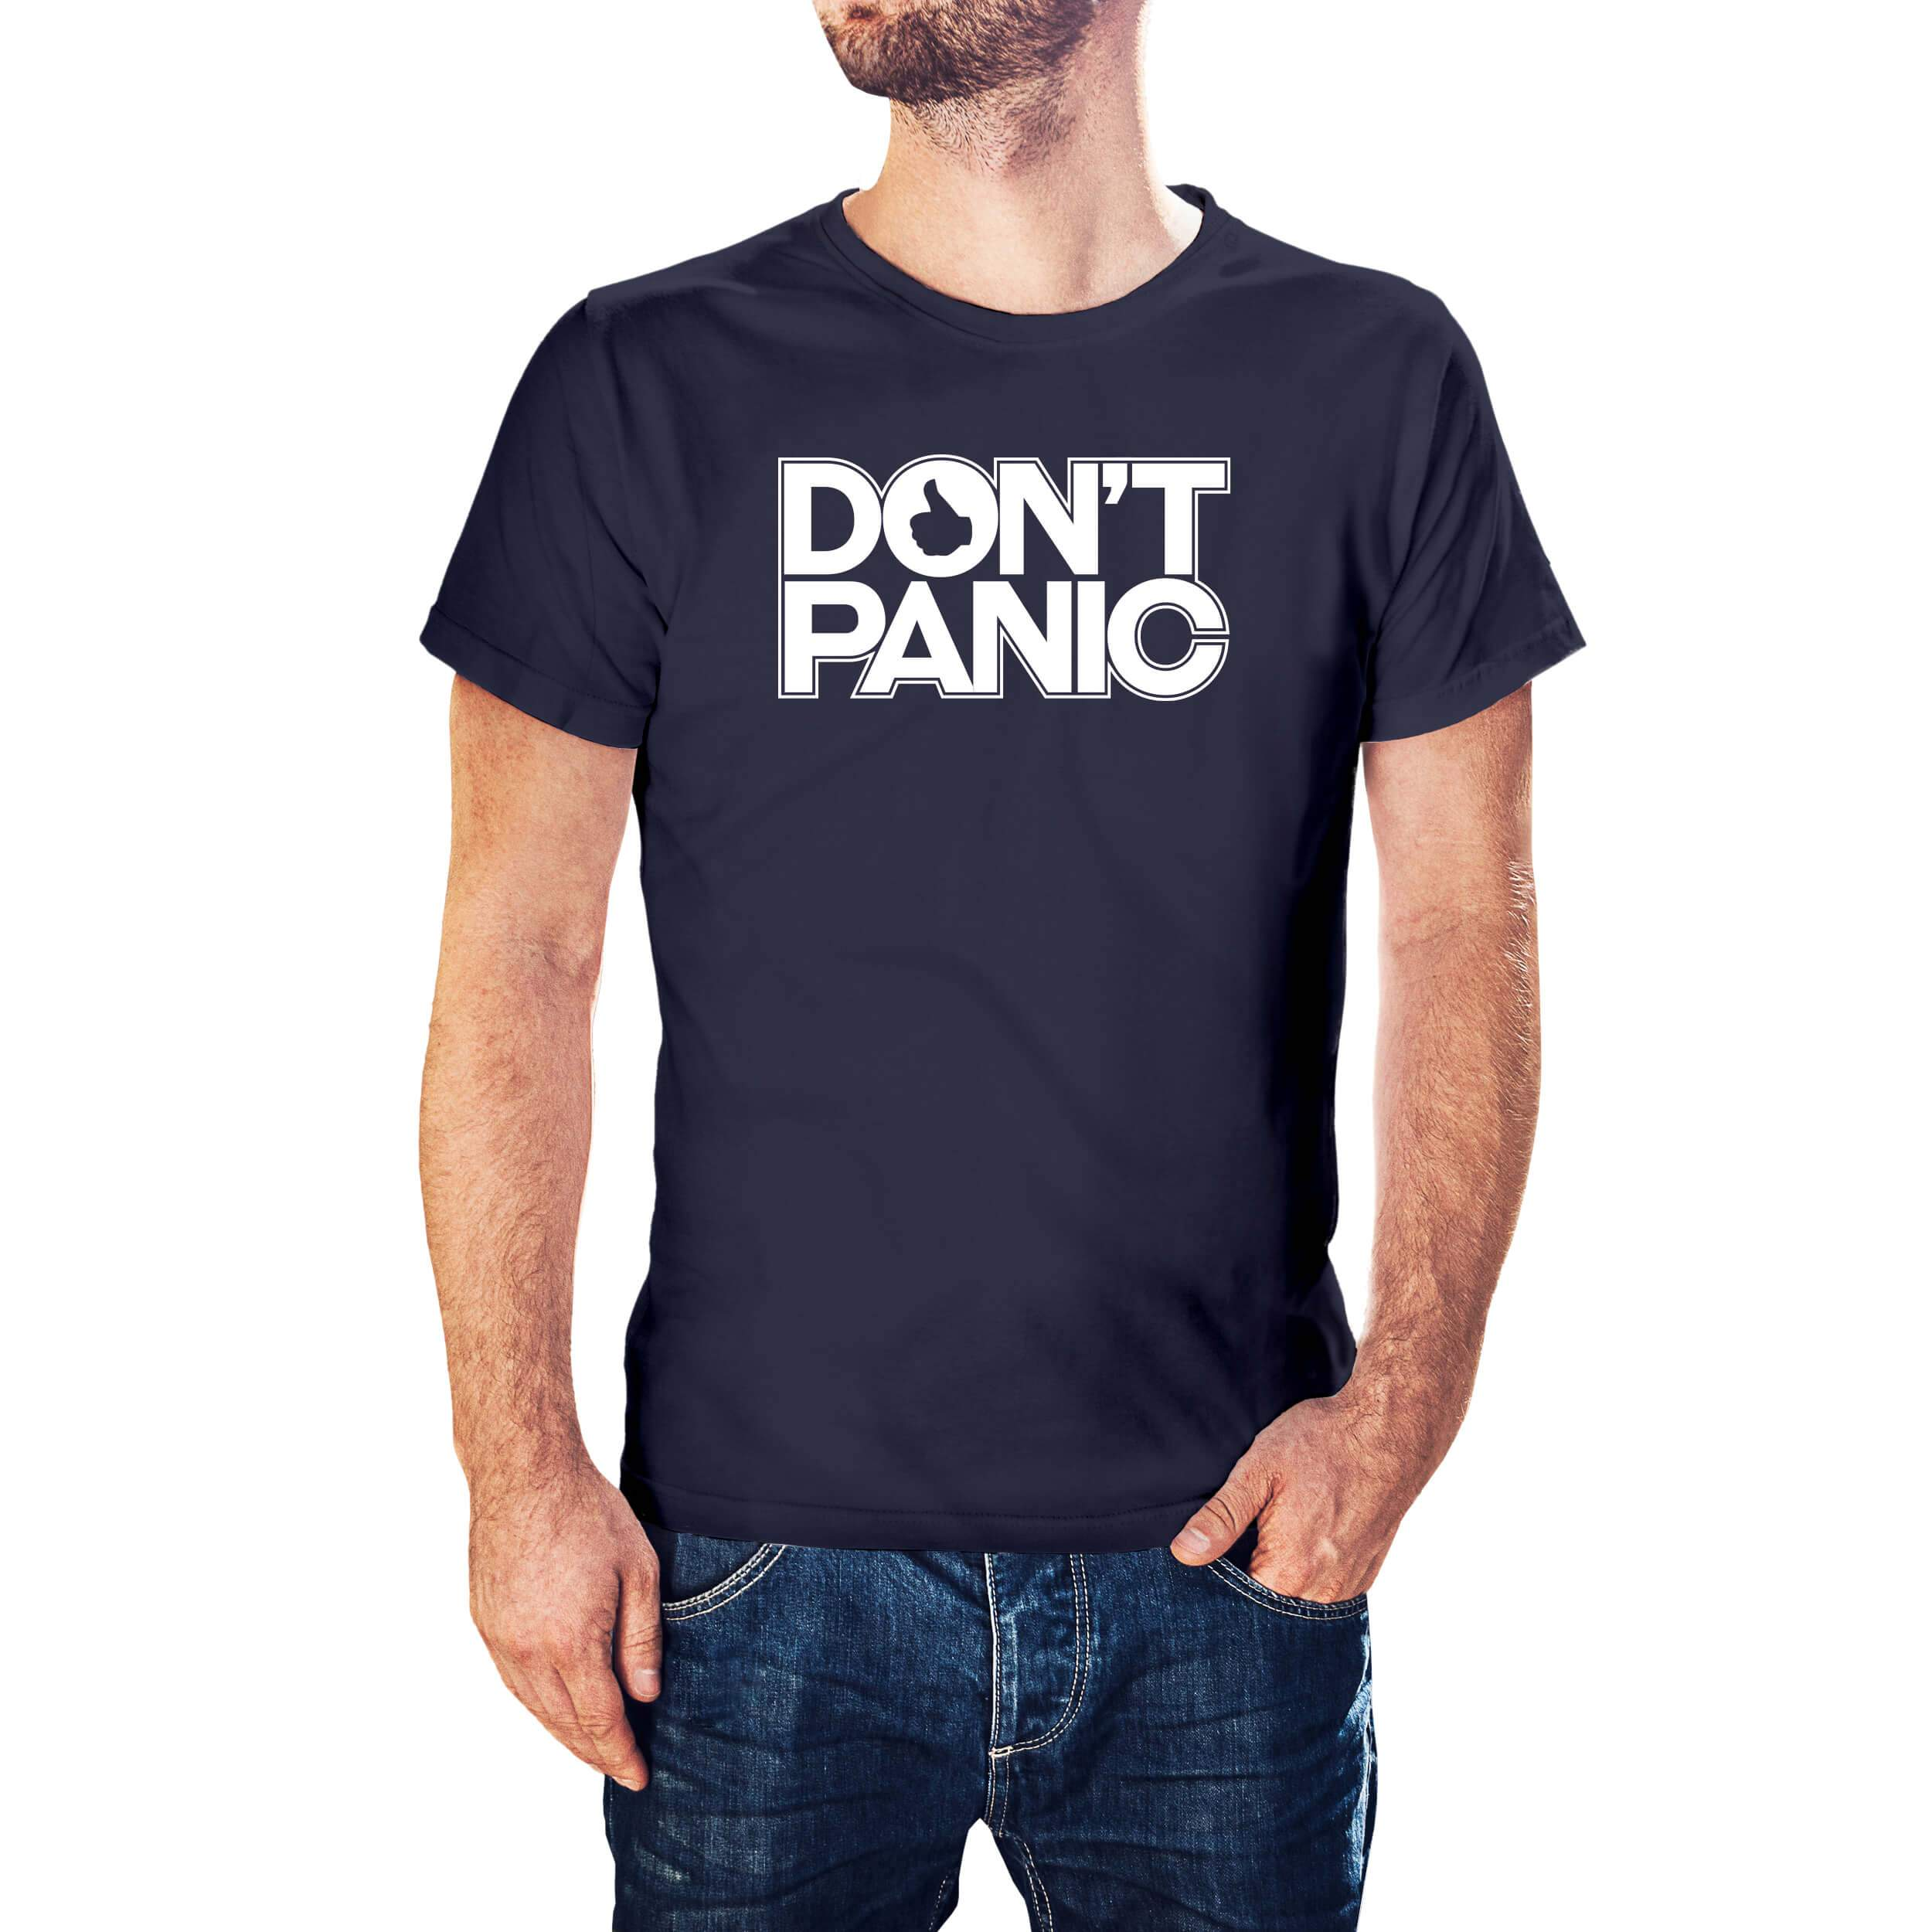 The Hitchhiker's Guide To The Galaxy Inspired Don't Panic T-Shirt